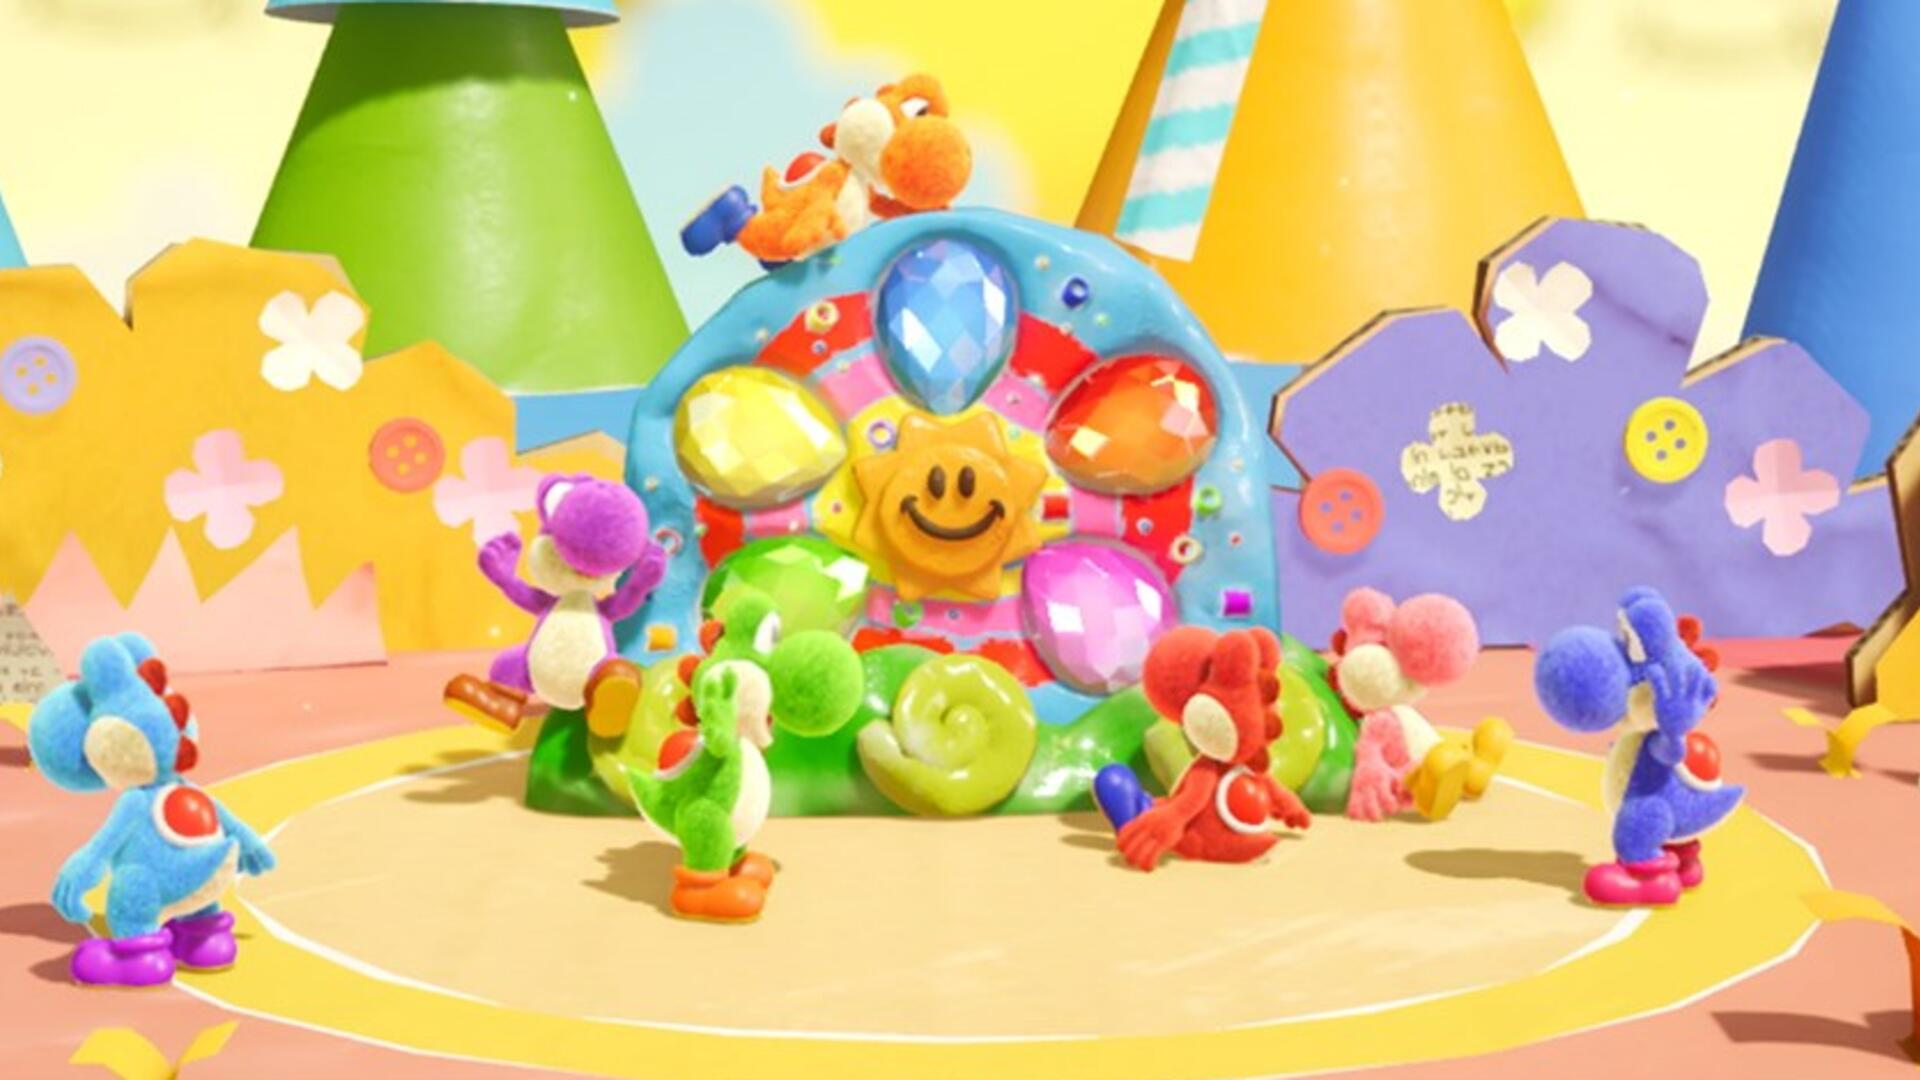 Yoshi's Crafted World and Kirby's Extra Epic Yarn are Both Coming Out in March